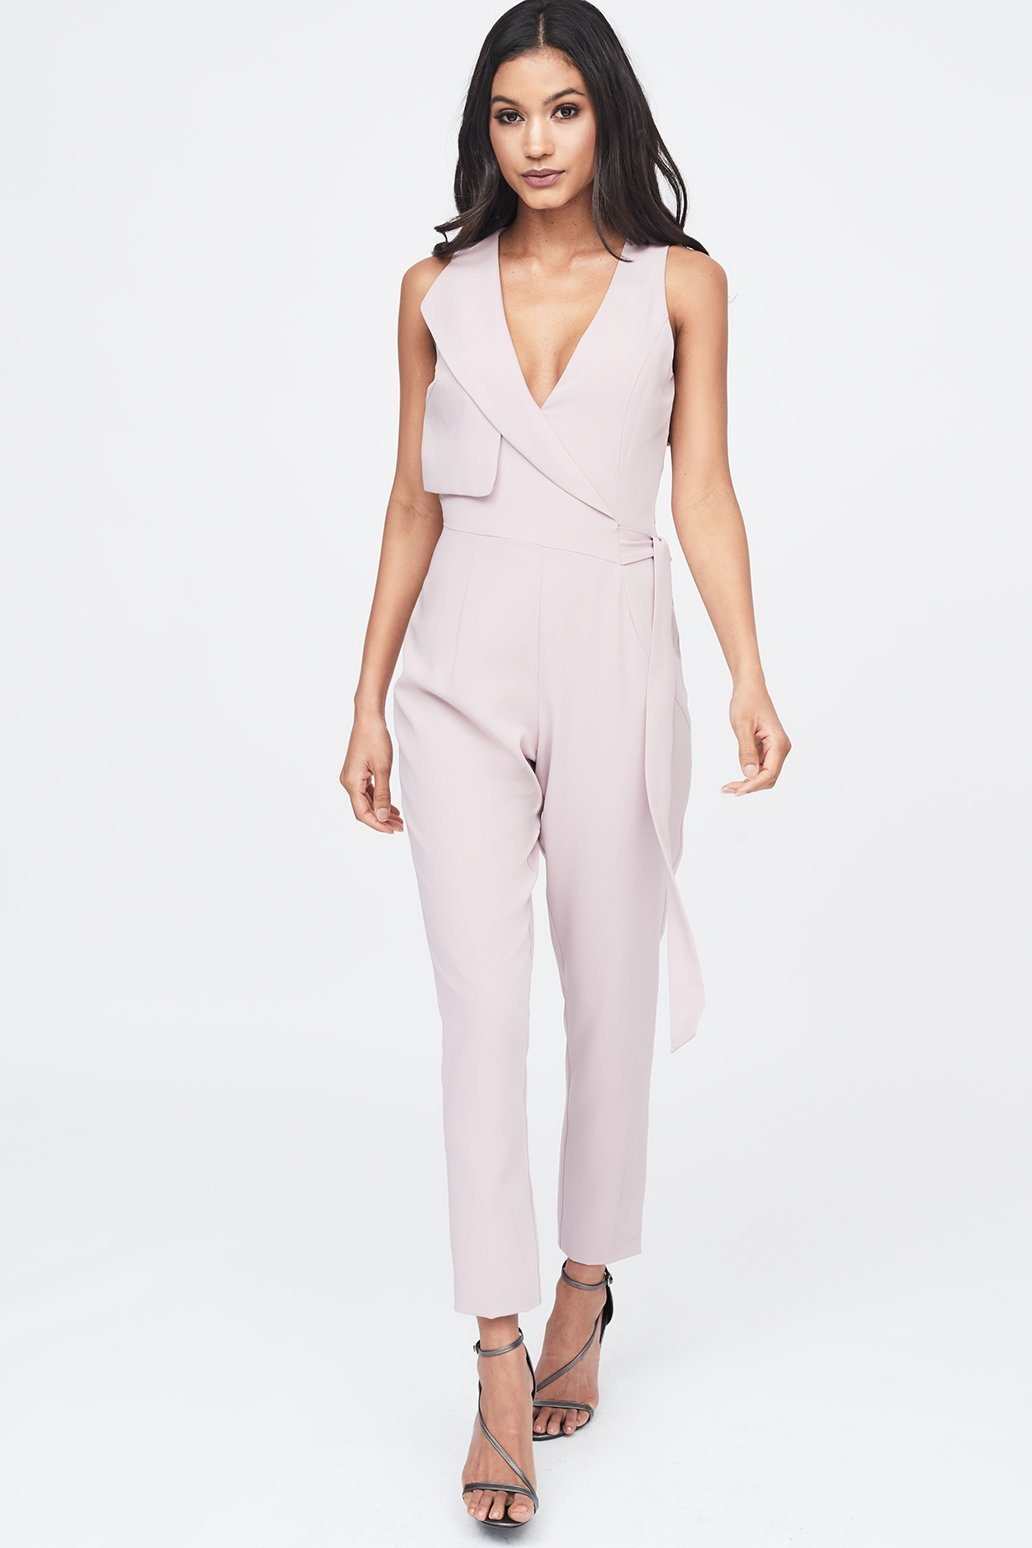 Storm Flap Jumpsuit in Nude